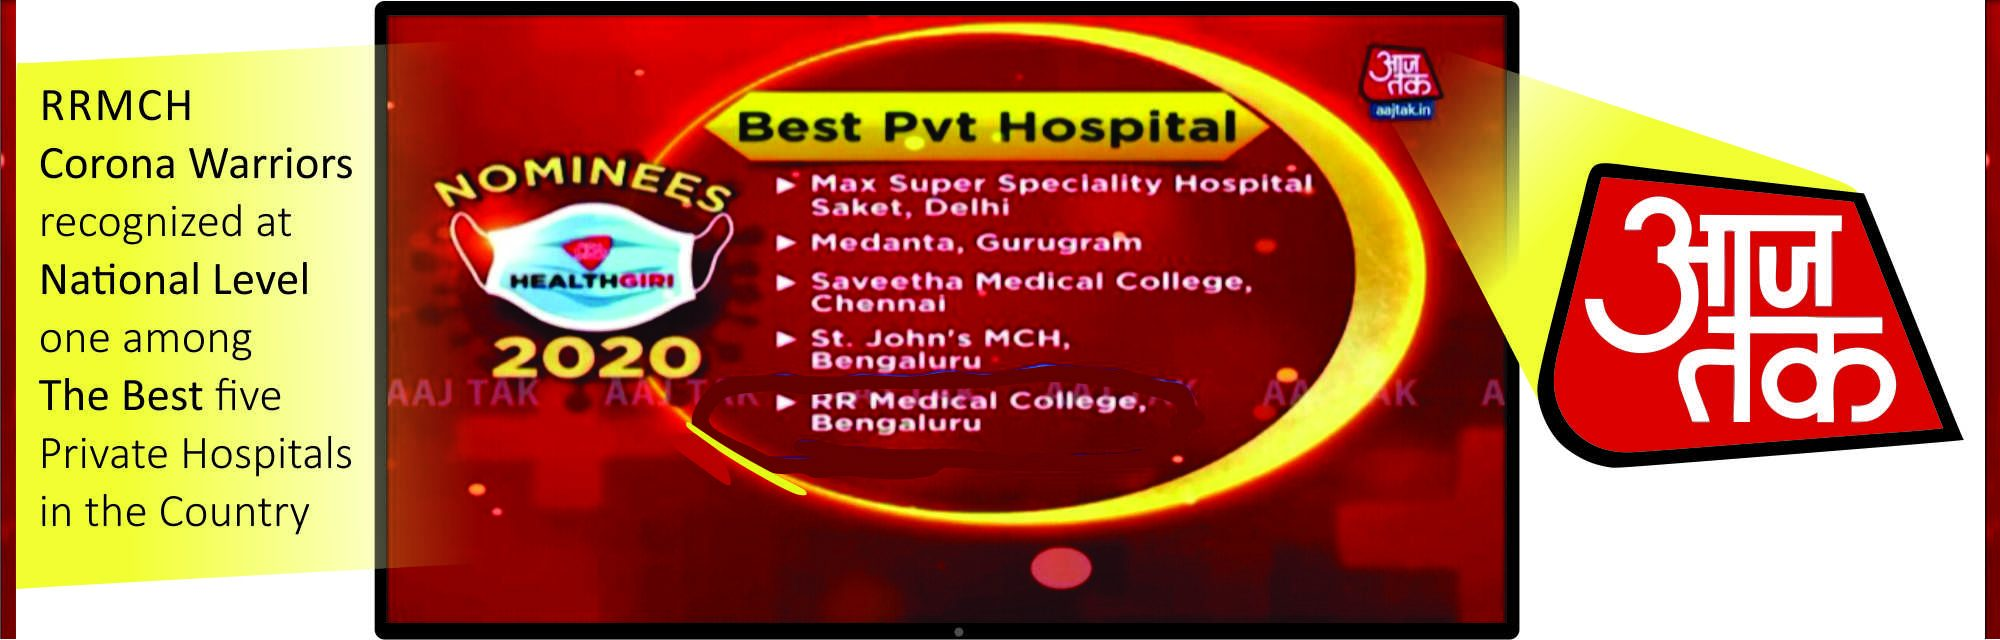 best-private-hospital AAJ TAK